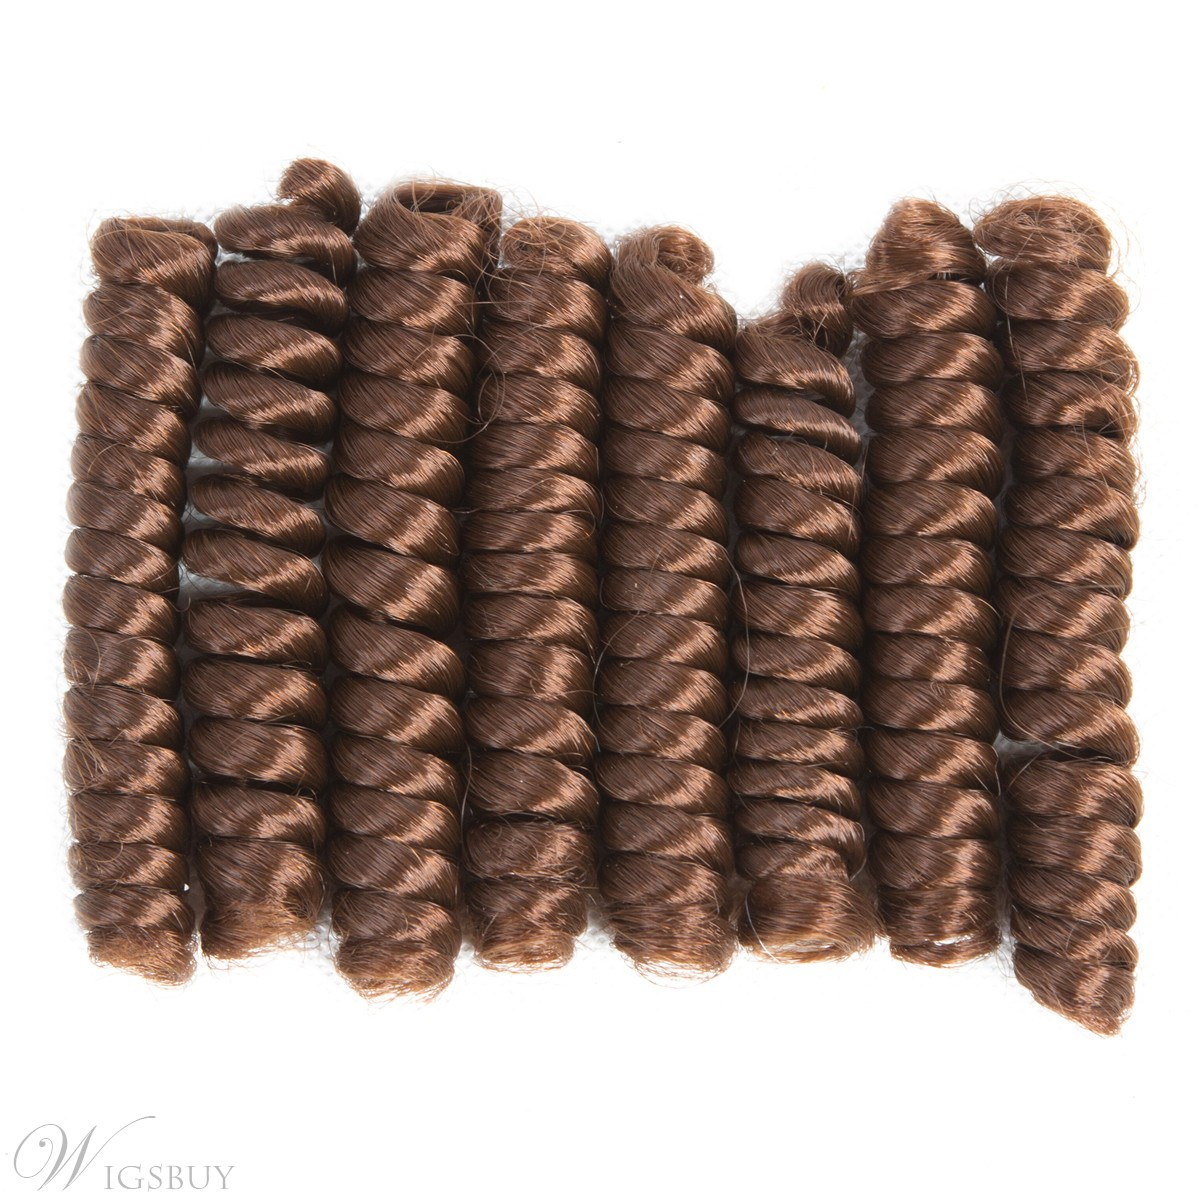 Synthetic Crochet Braids Toni Curl Protective StylesTwisted Out Braiding Hair Extensions